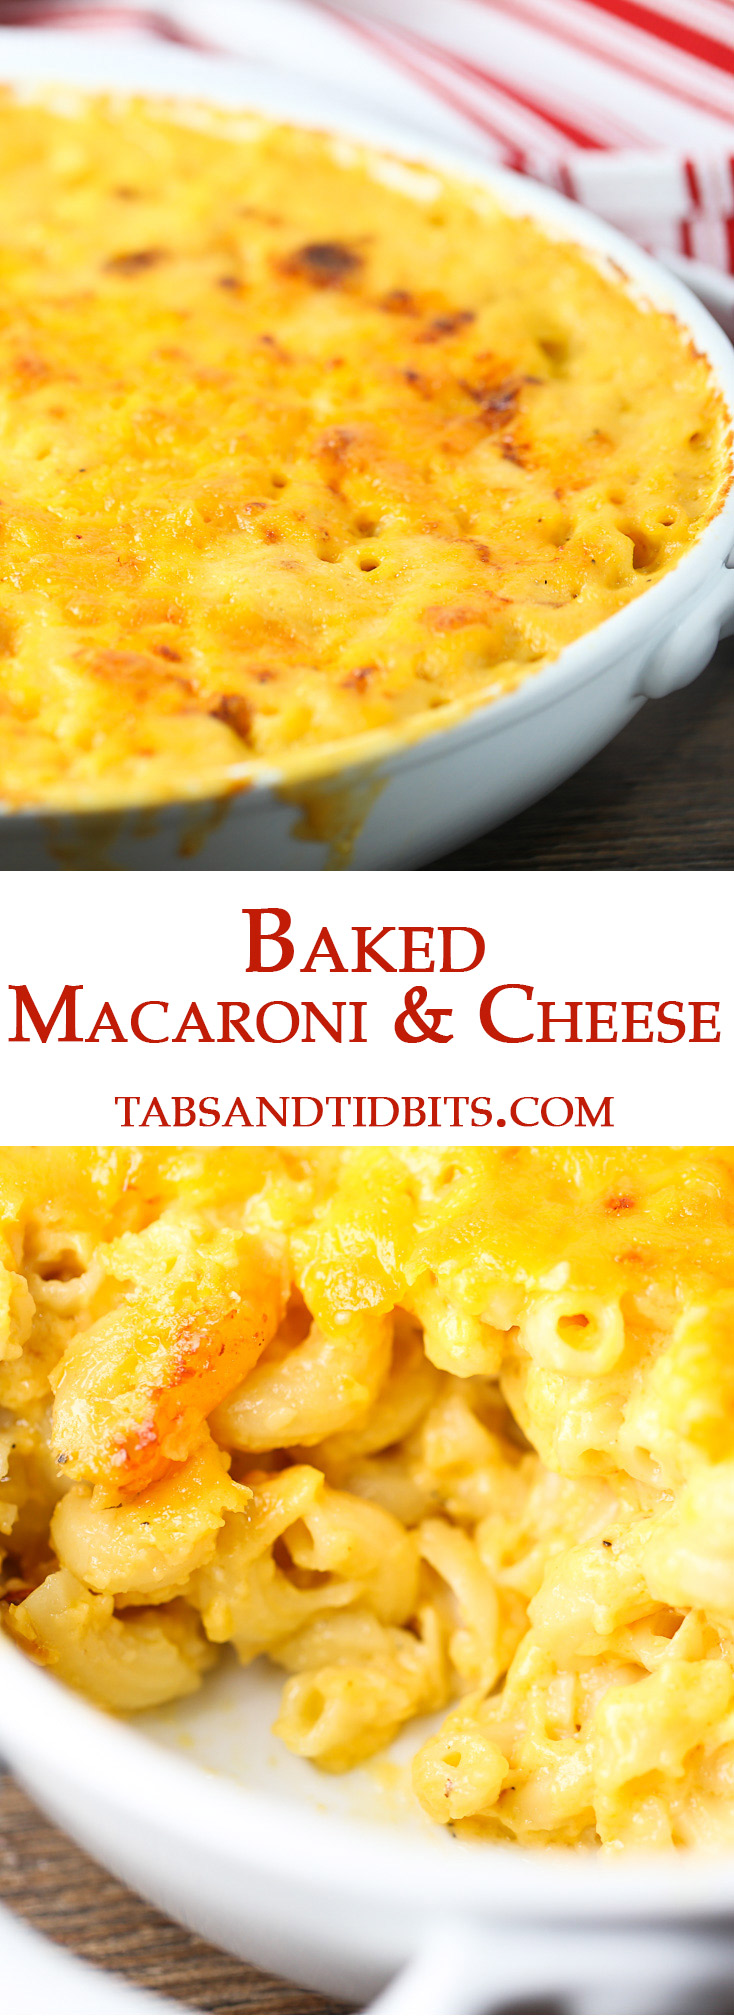 Just two cheeses and a flavorful béchamel sauce creates this classic go to macaroni & cheese!